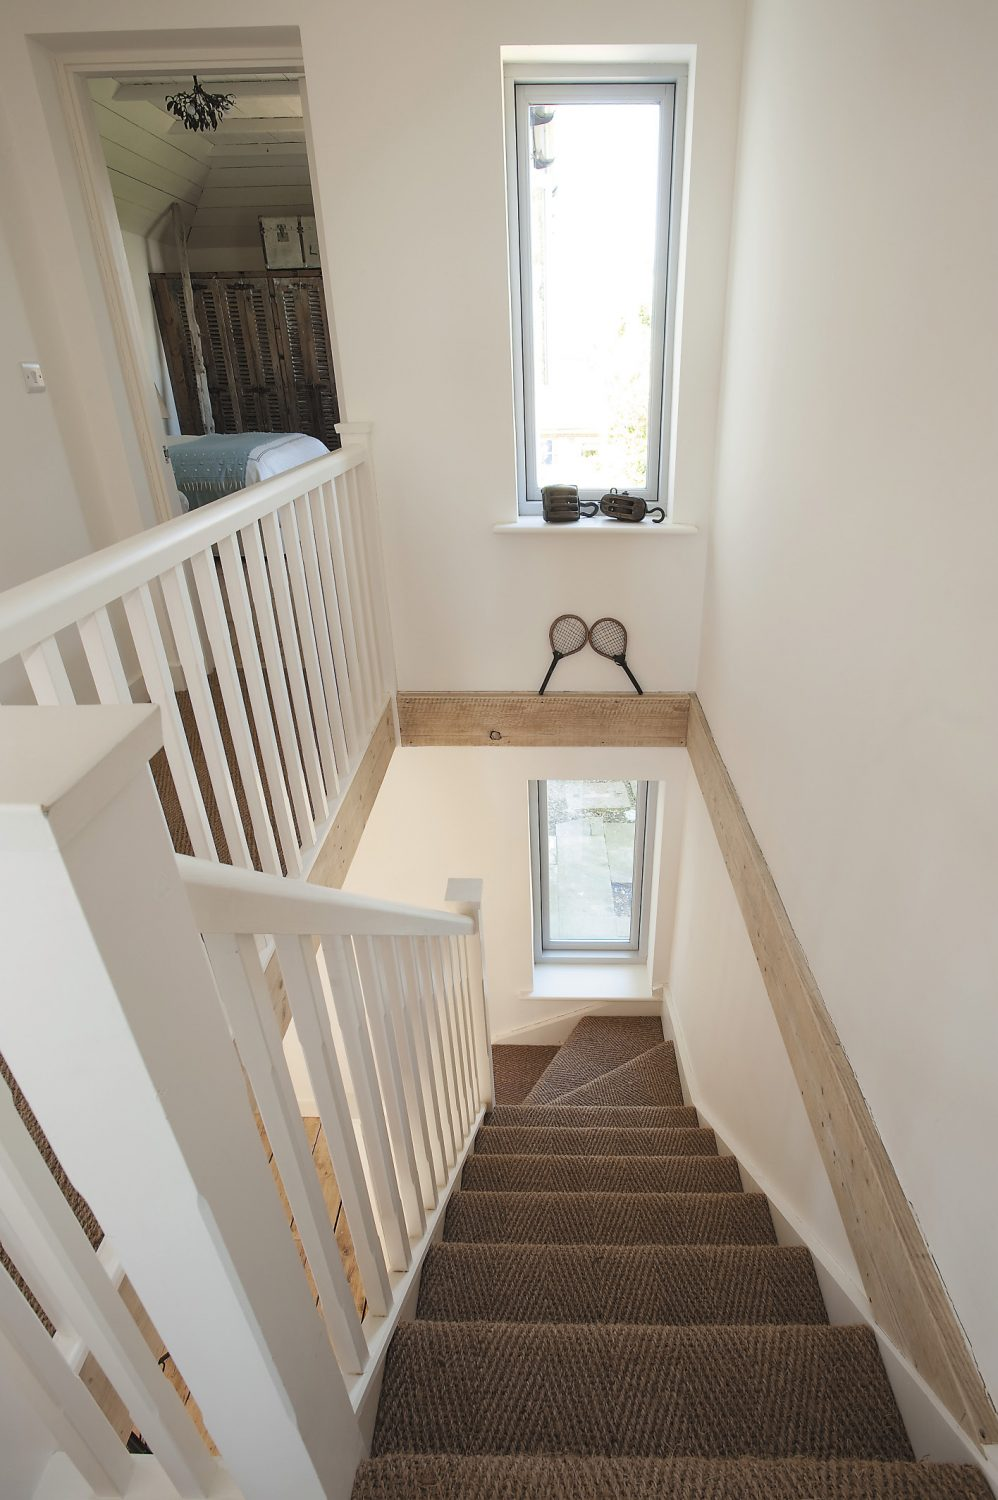 The staircase was repositioned to make the most of the light and available space; the hoists on the window ledge were probably used originally by local fishermen. The seagrass was sourced from Avalon Flooring